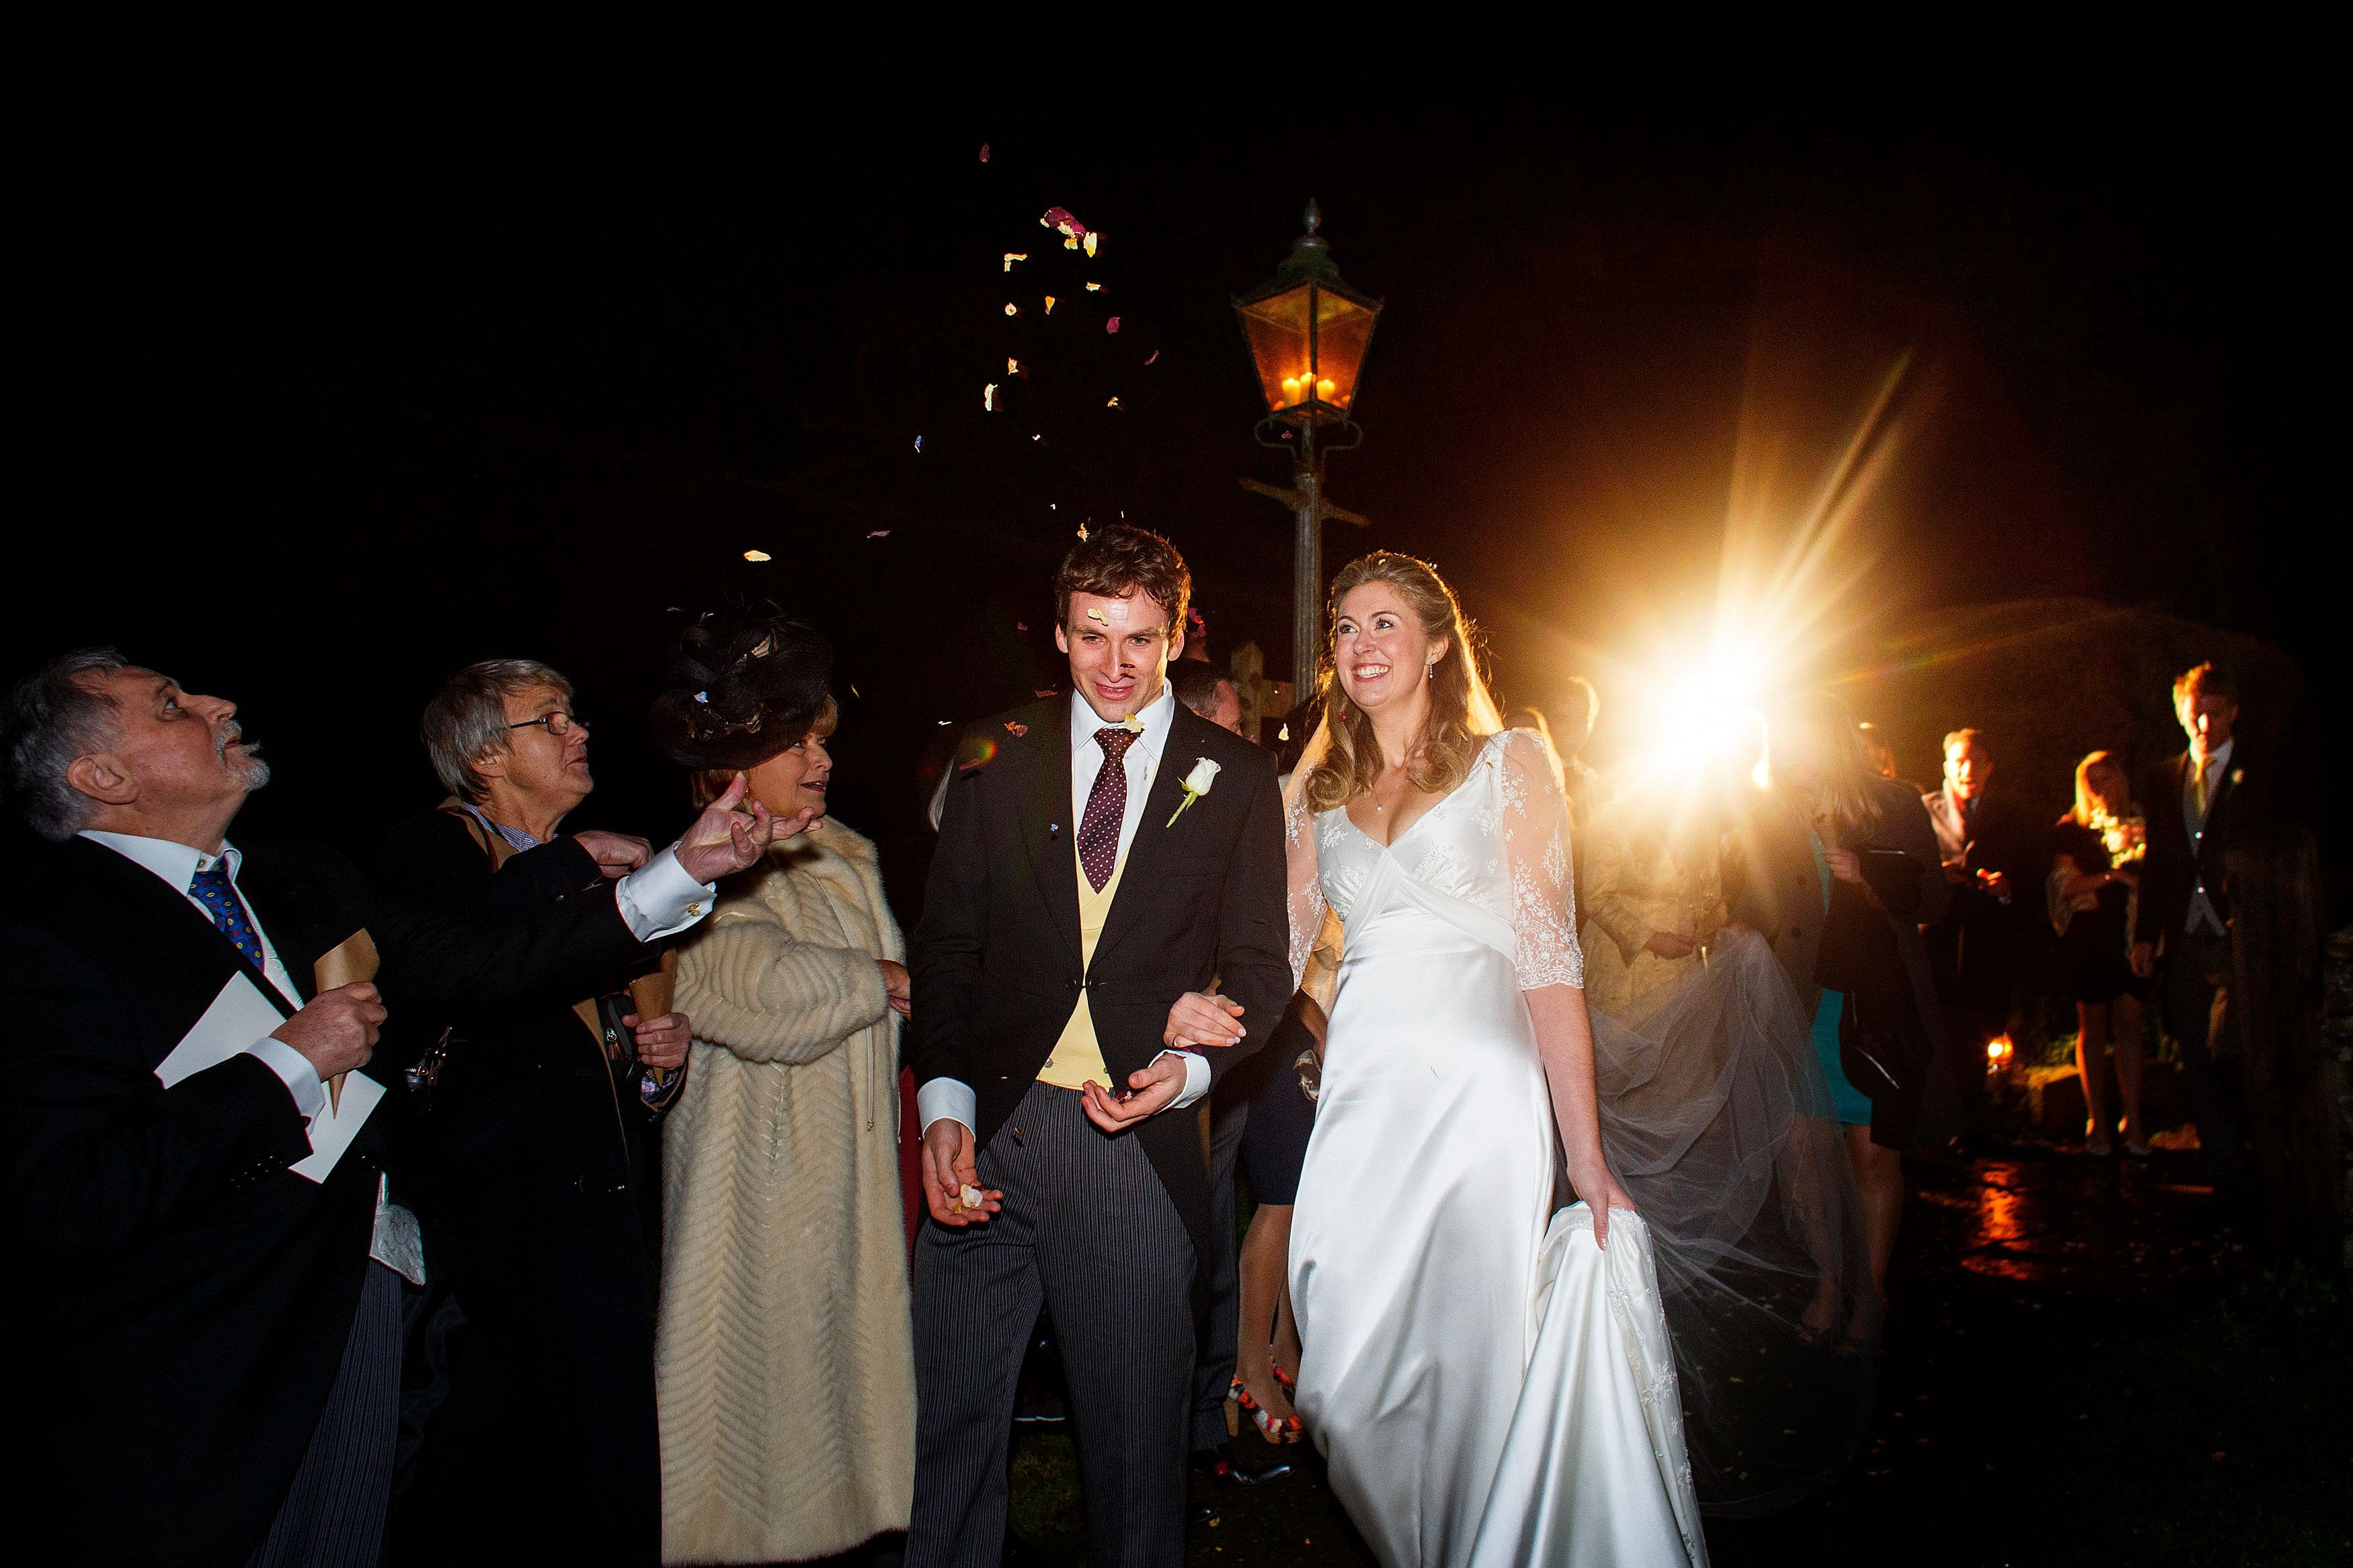 Hereford wedding photography | before & after